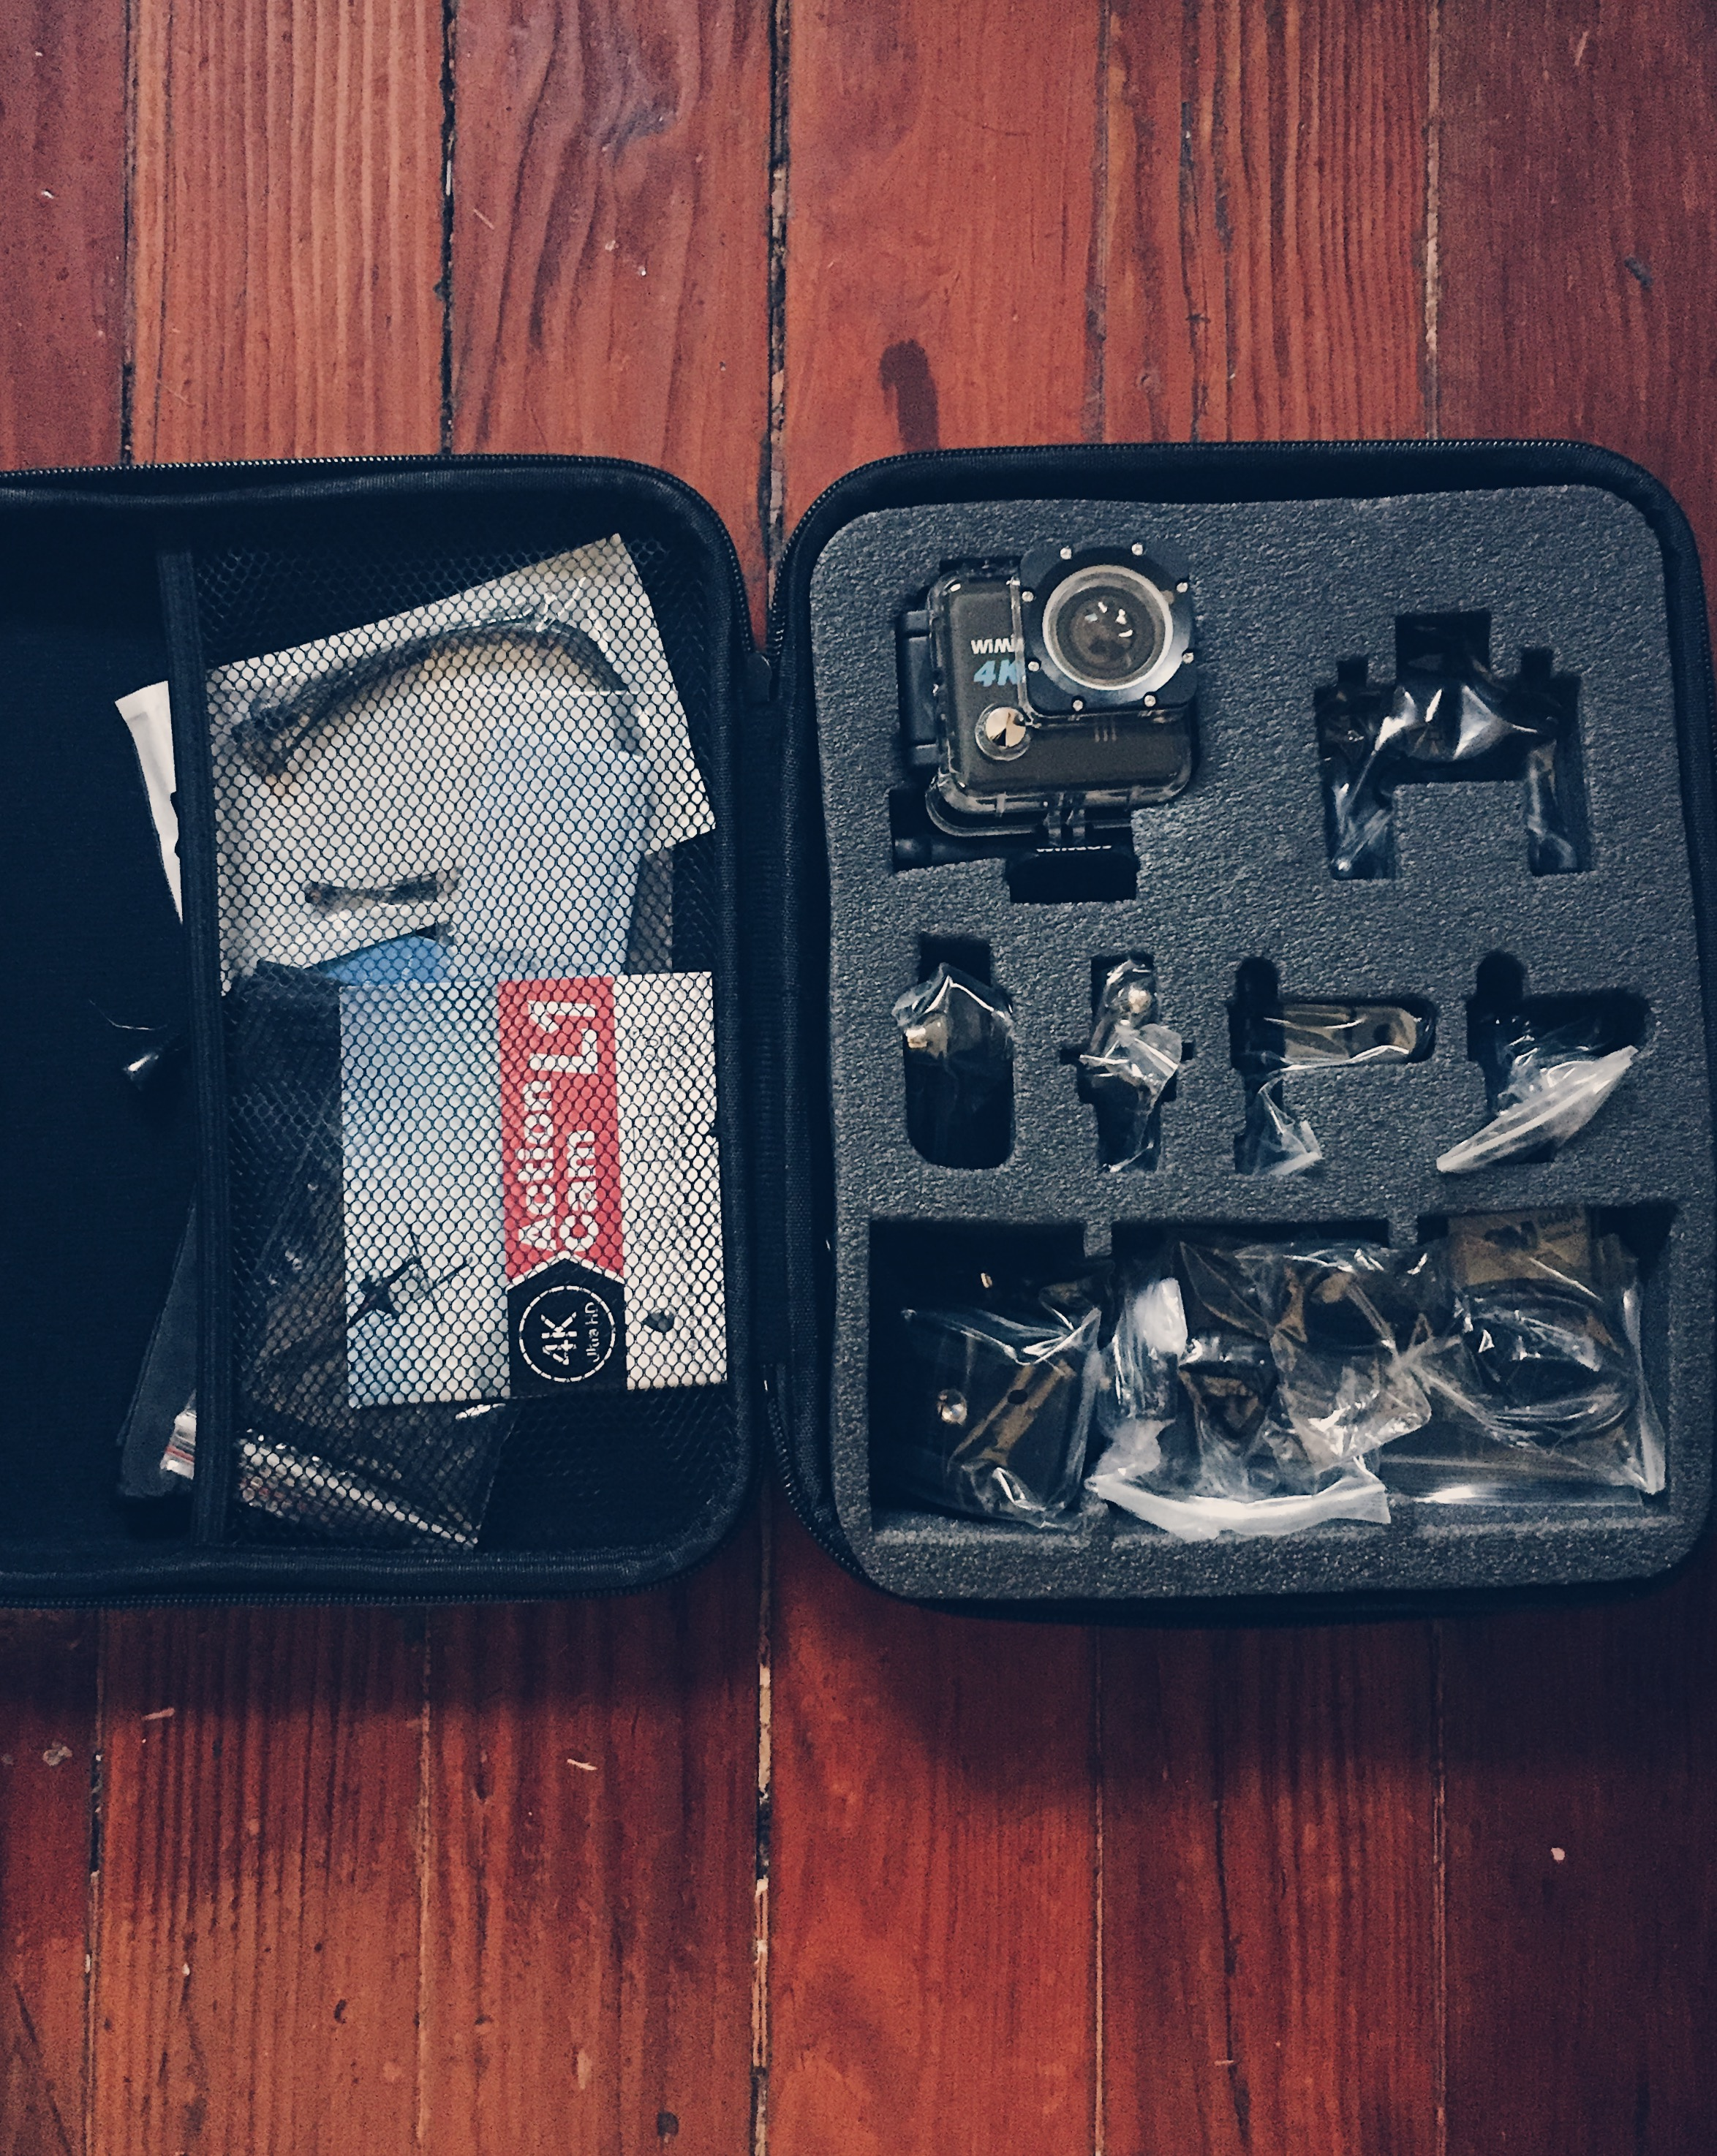 GoPro in travel case 2